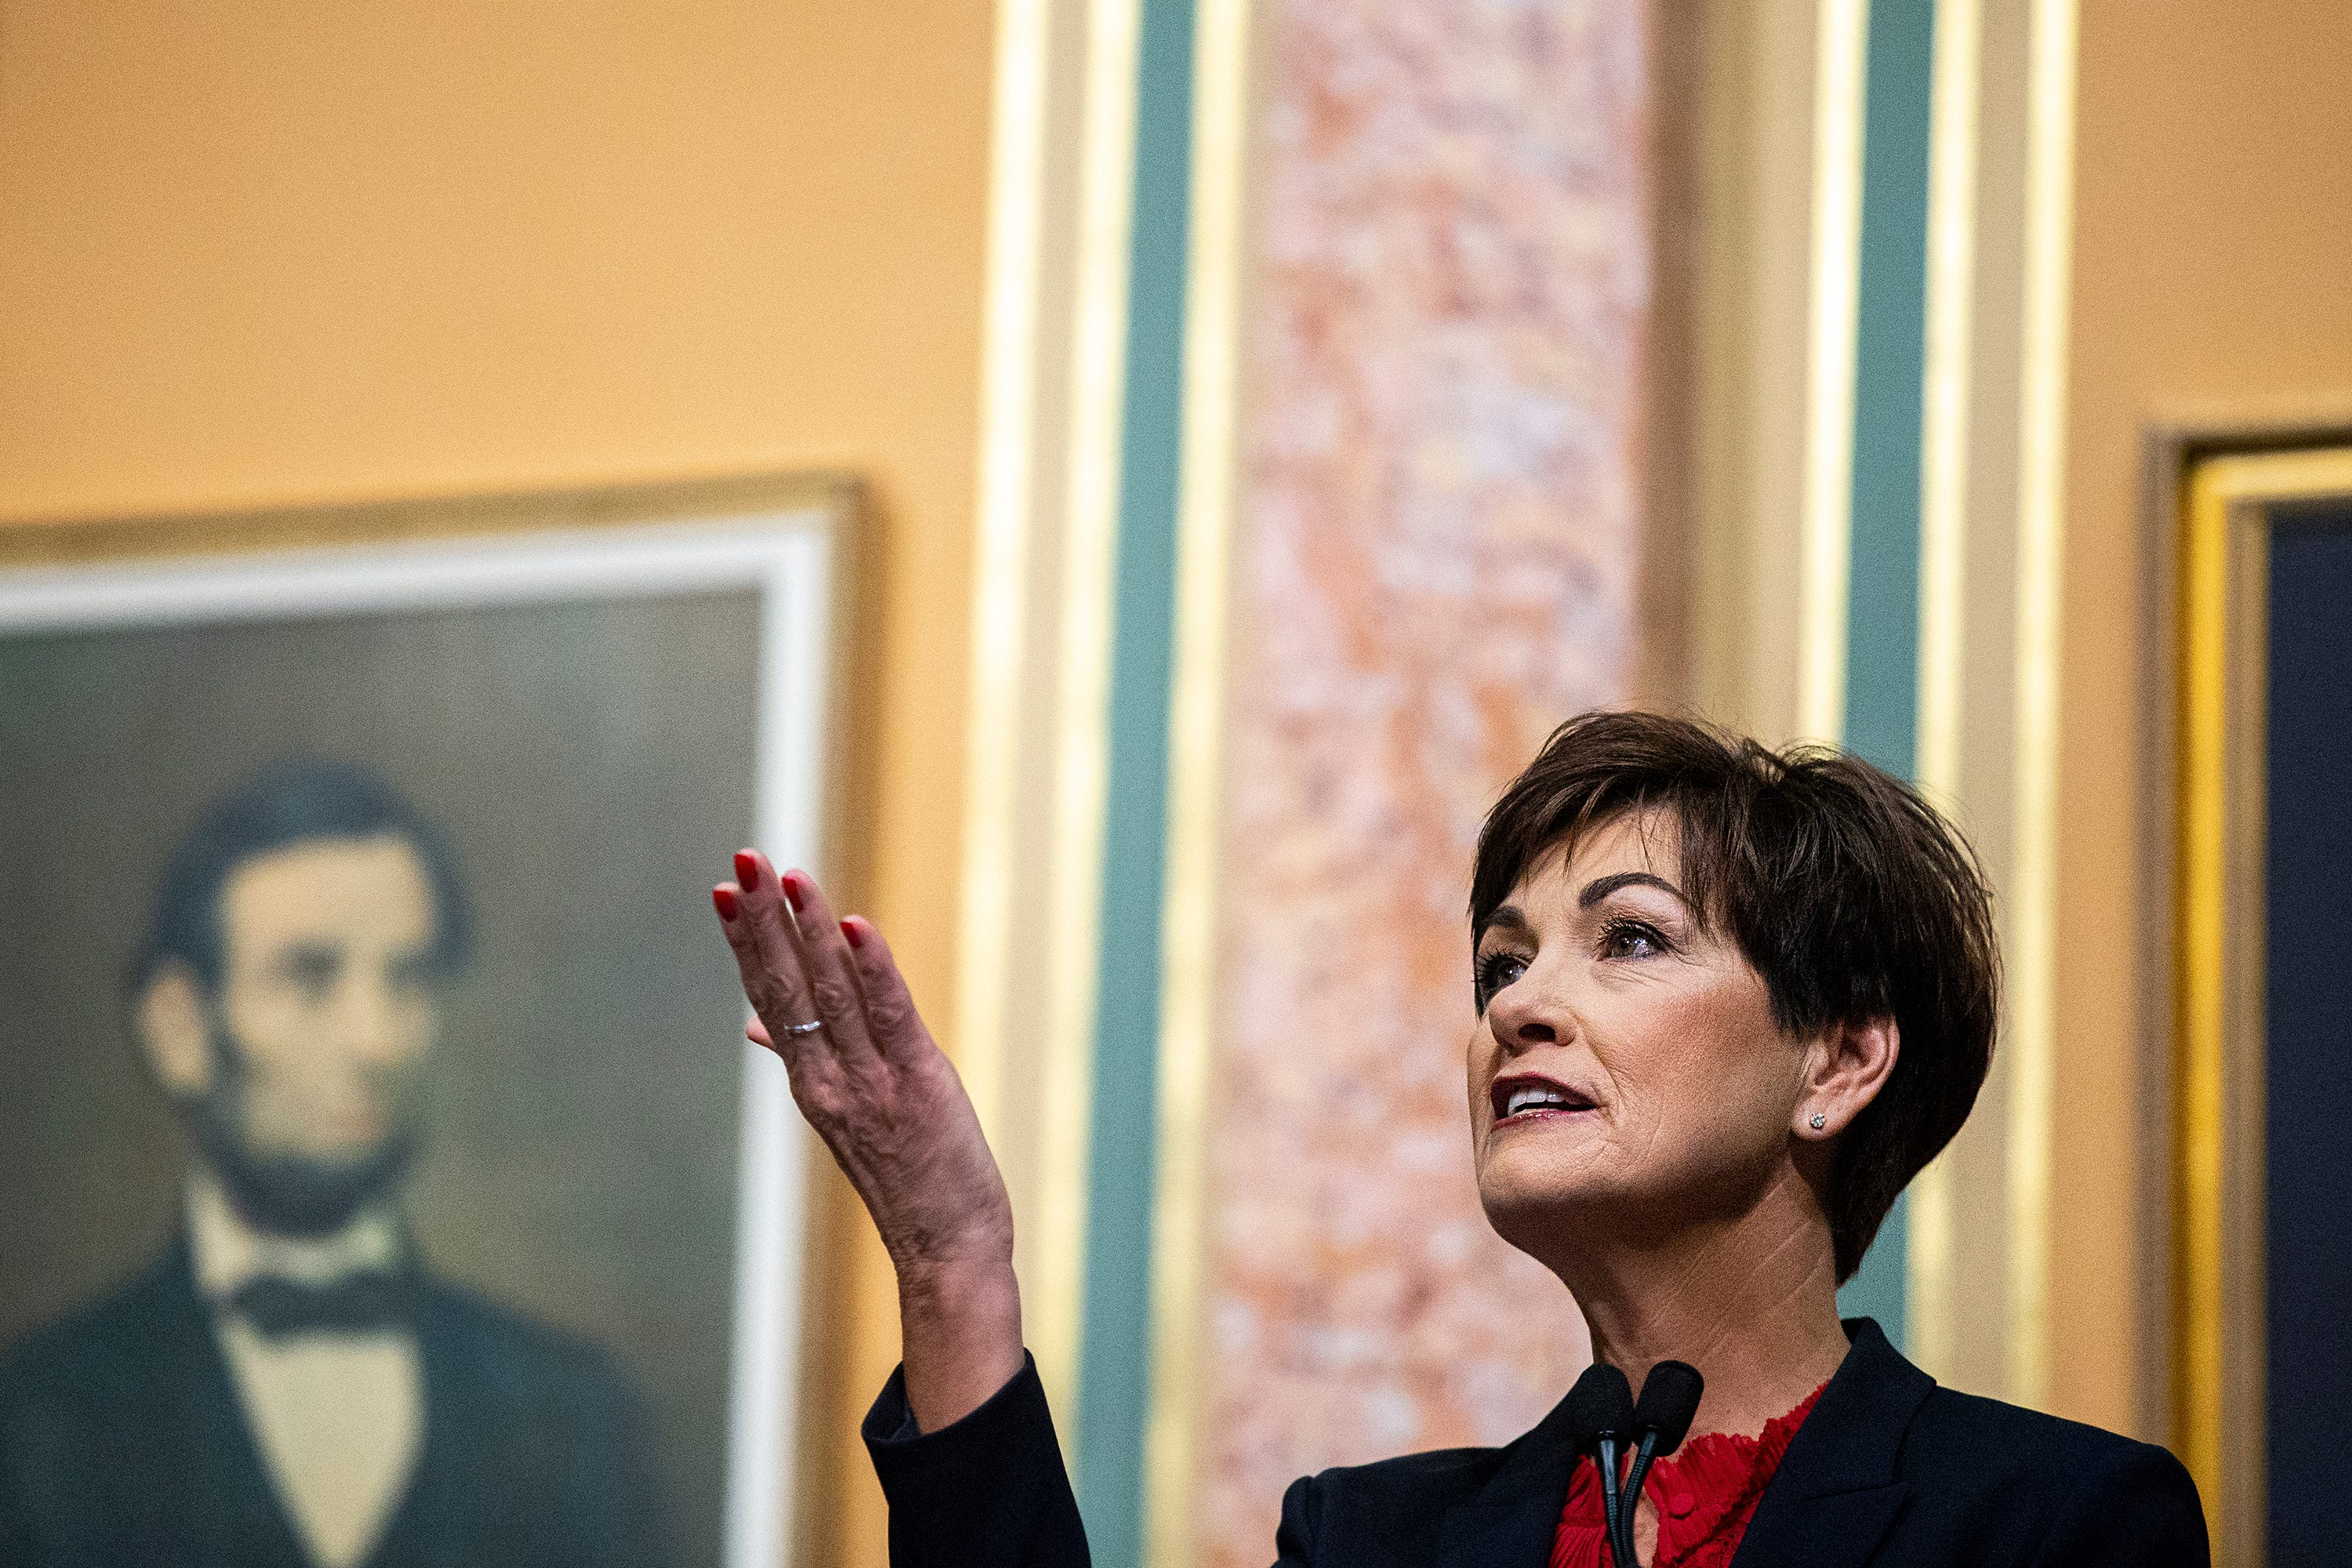 Kim Reynolds' proposal would restore voting rights to felons who have served their sentences